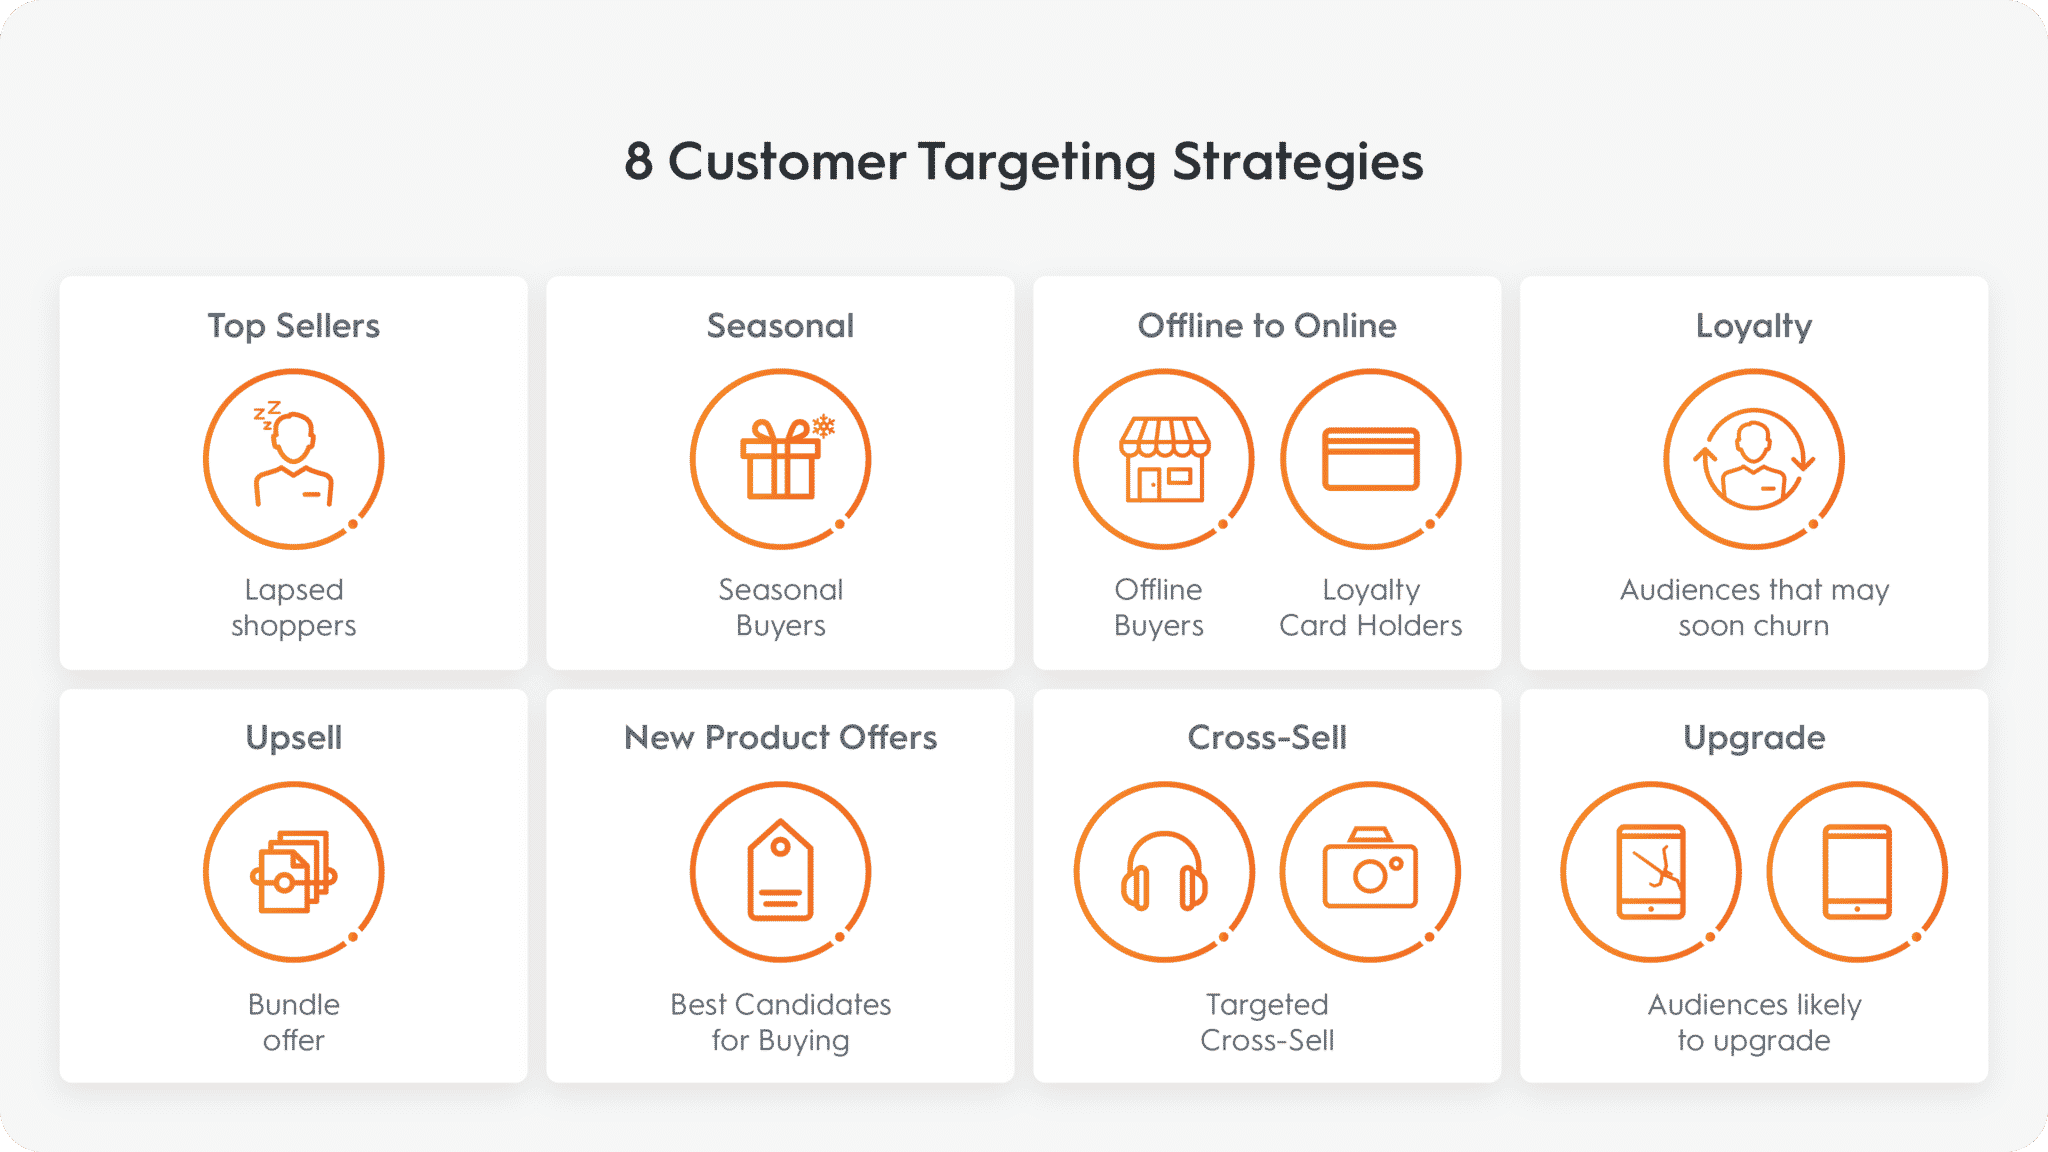 8 Customer Targeting Strategies